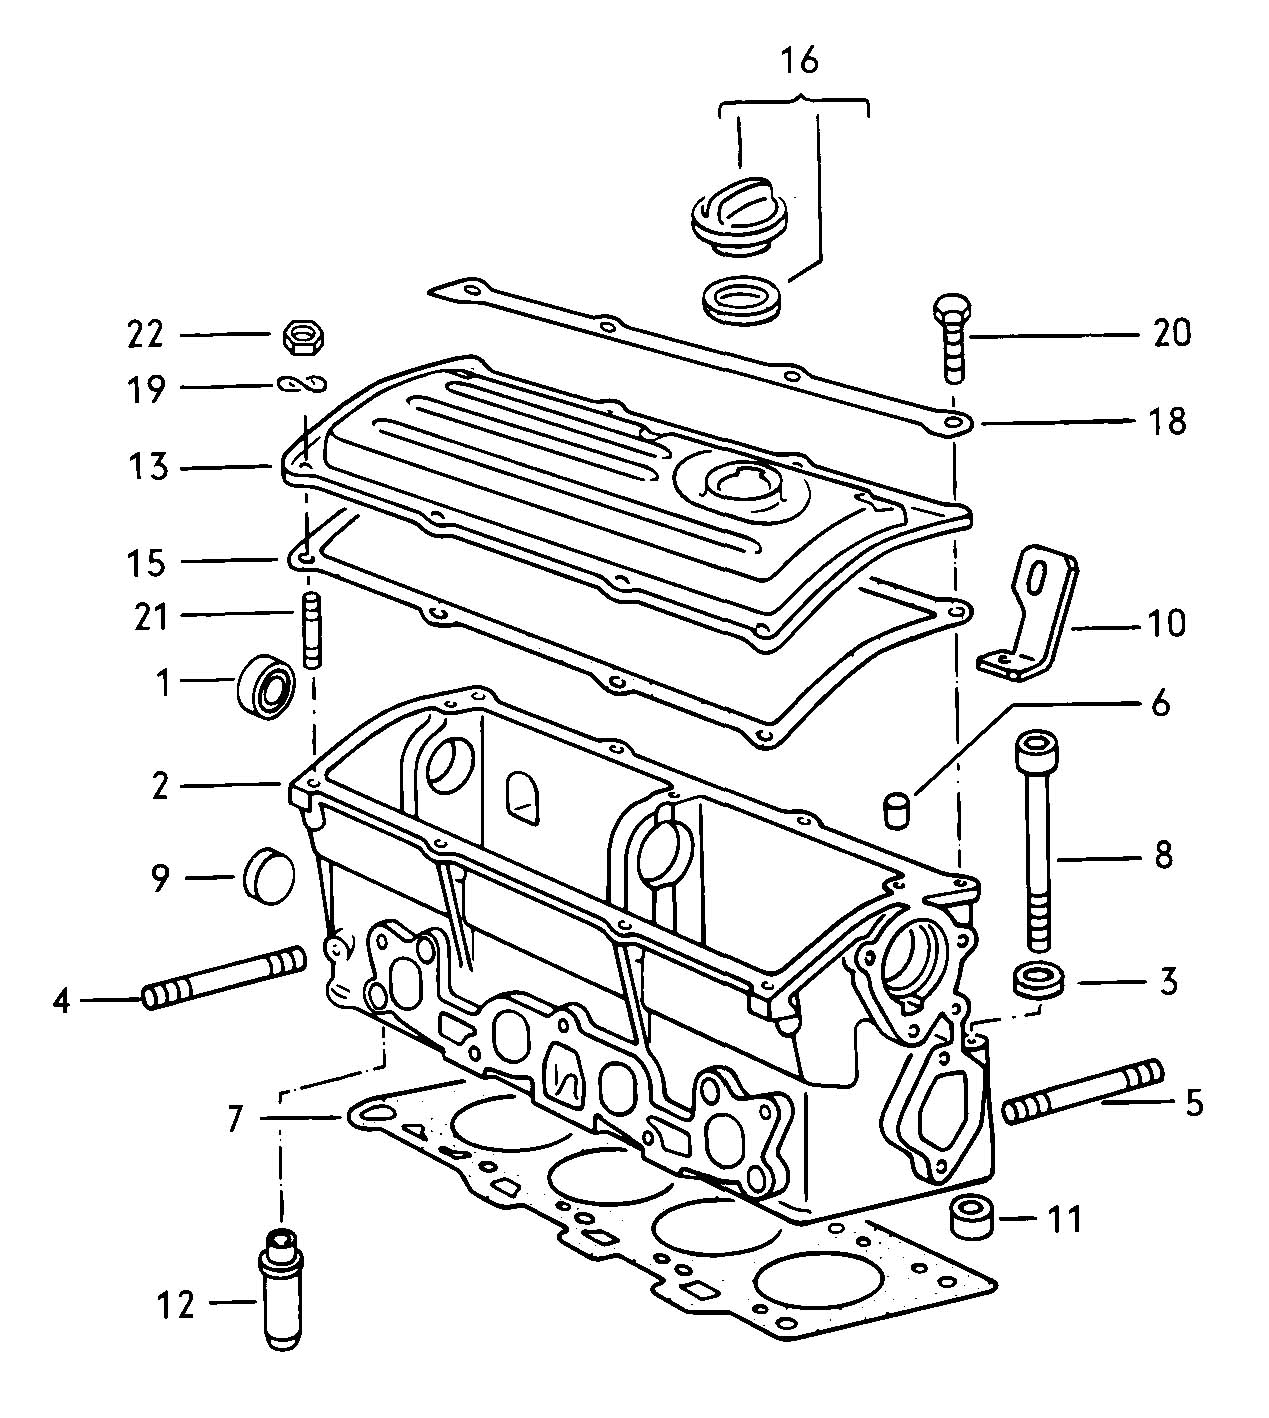 1980 Vw Rabbit Fuse Box Diagram. Diagrams. Auto Fuse Box